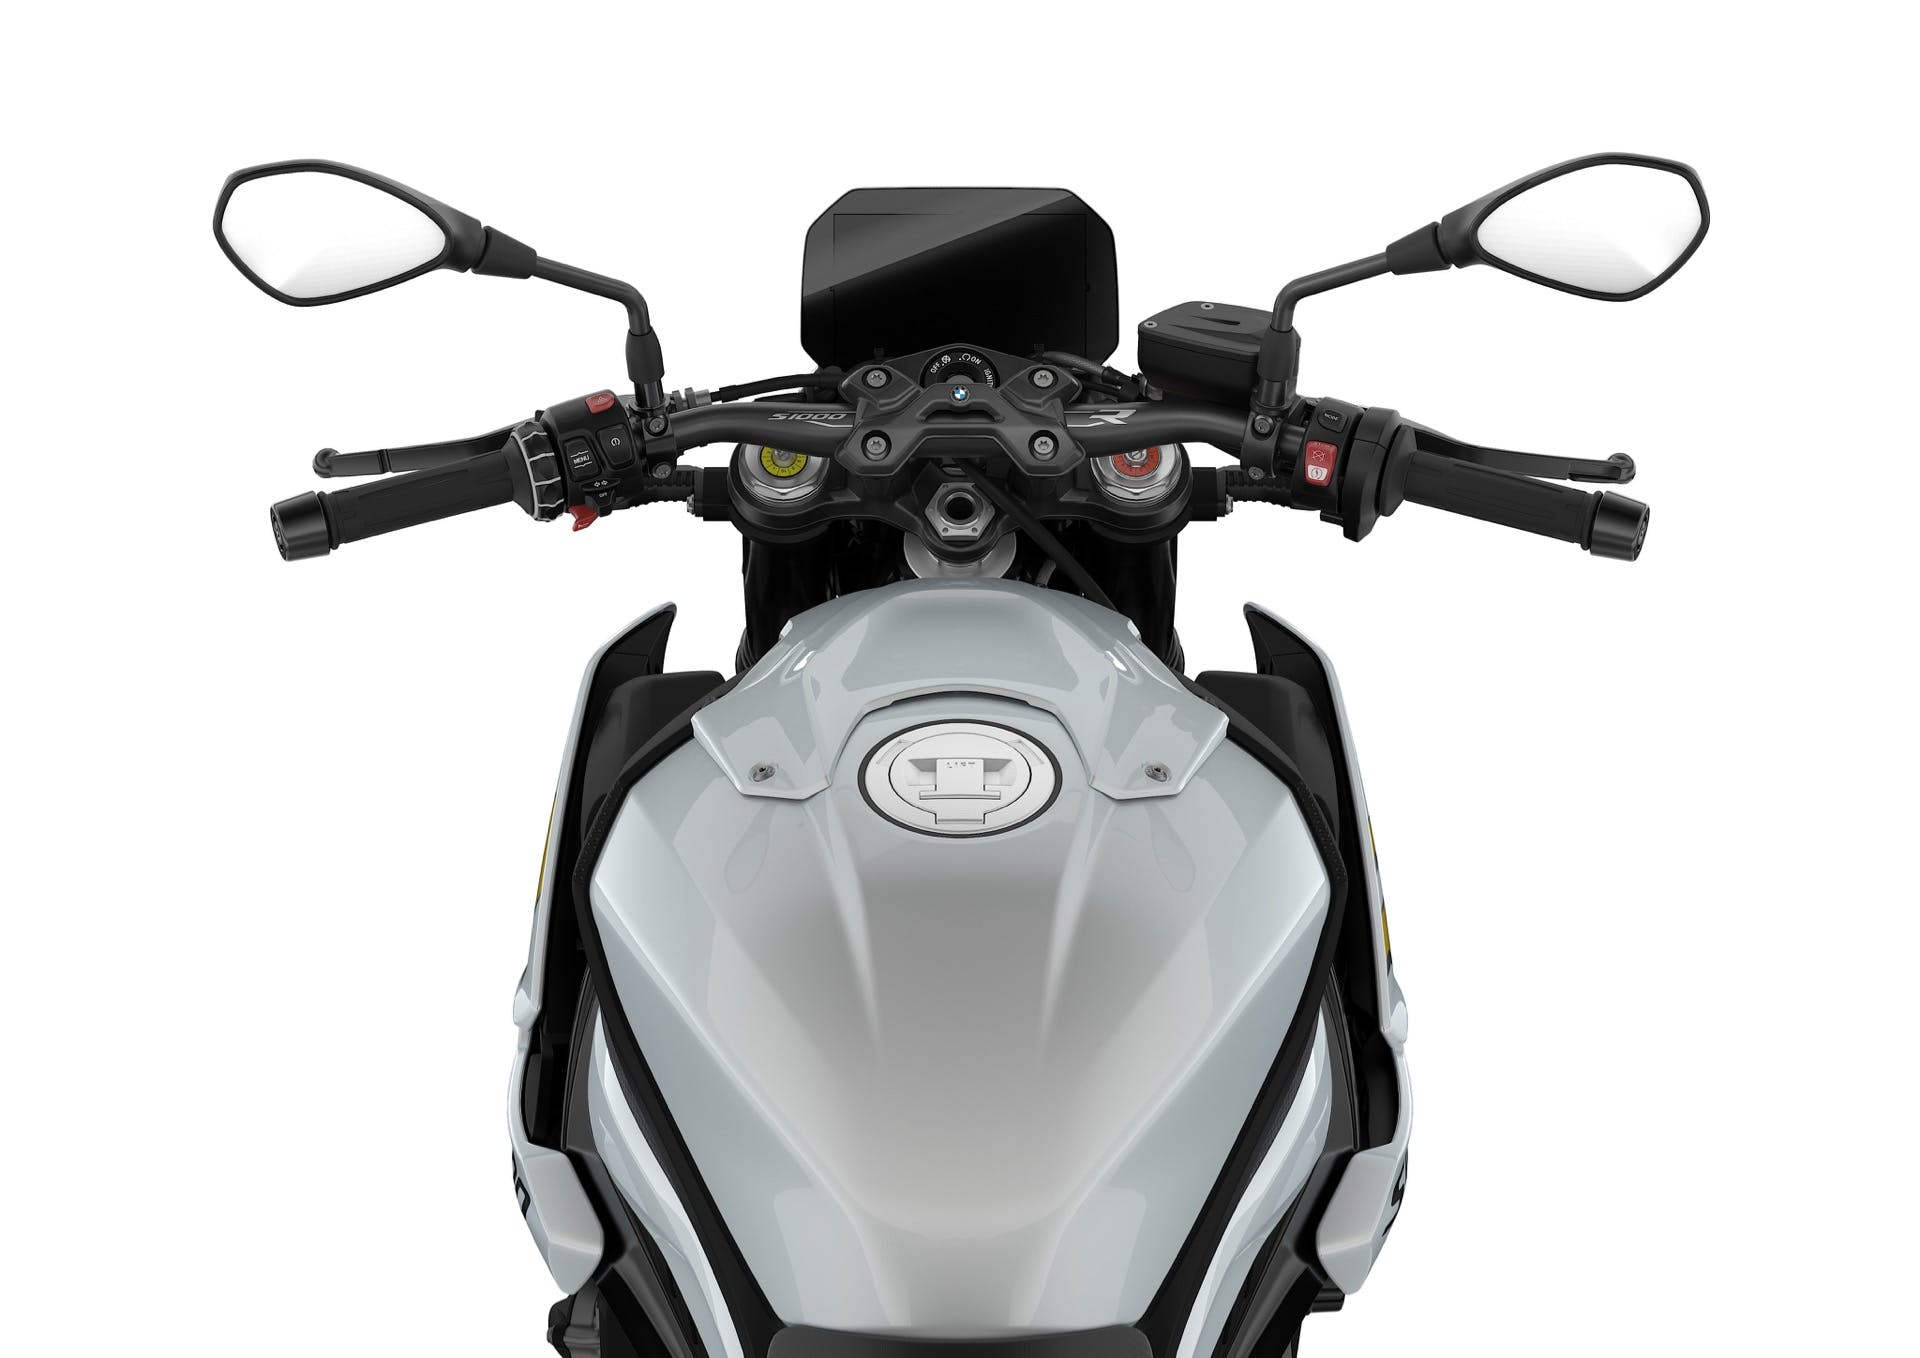 BMW S 1000 R 2021 display tft